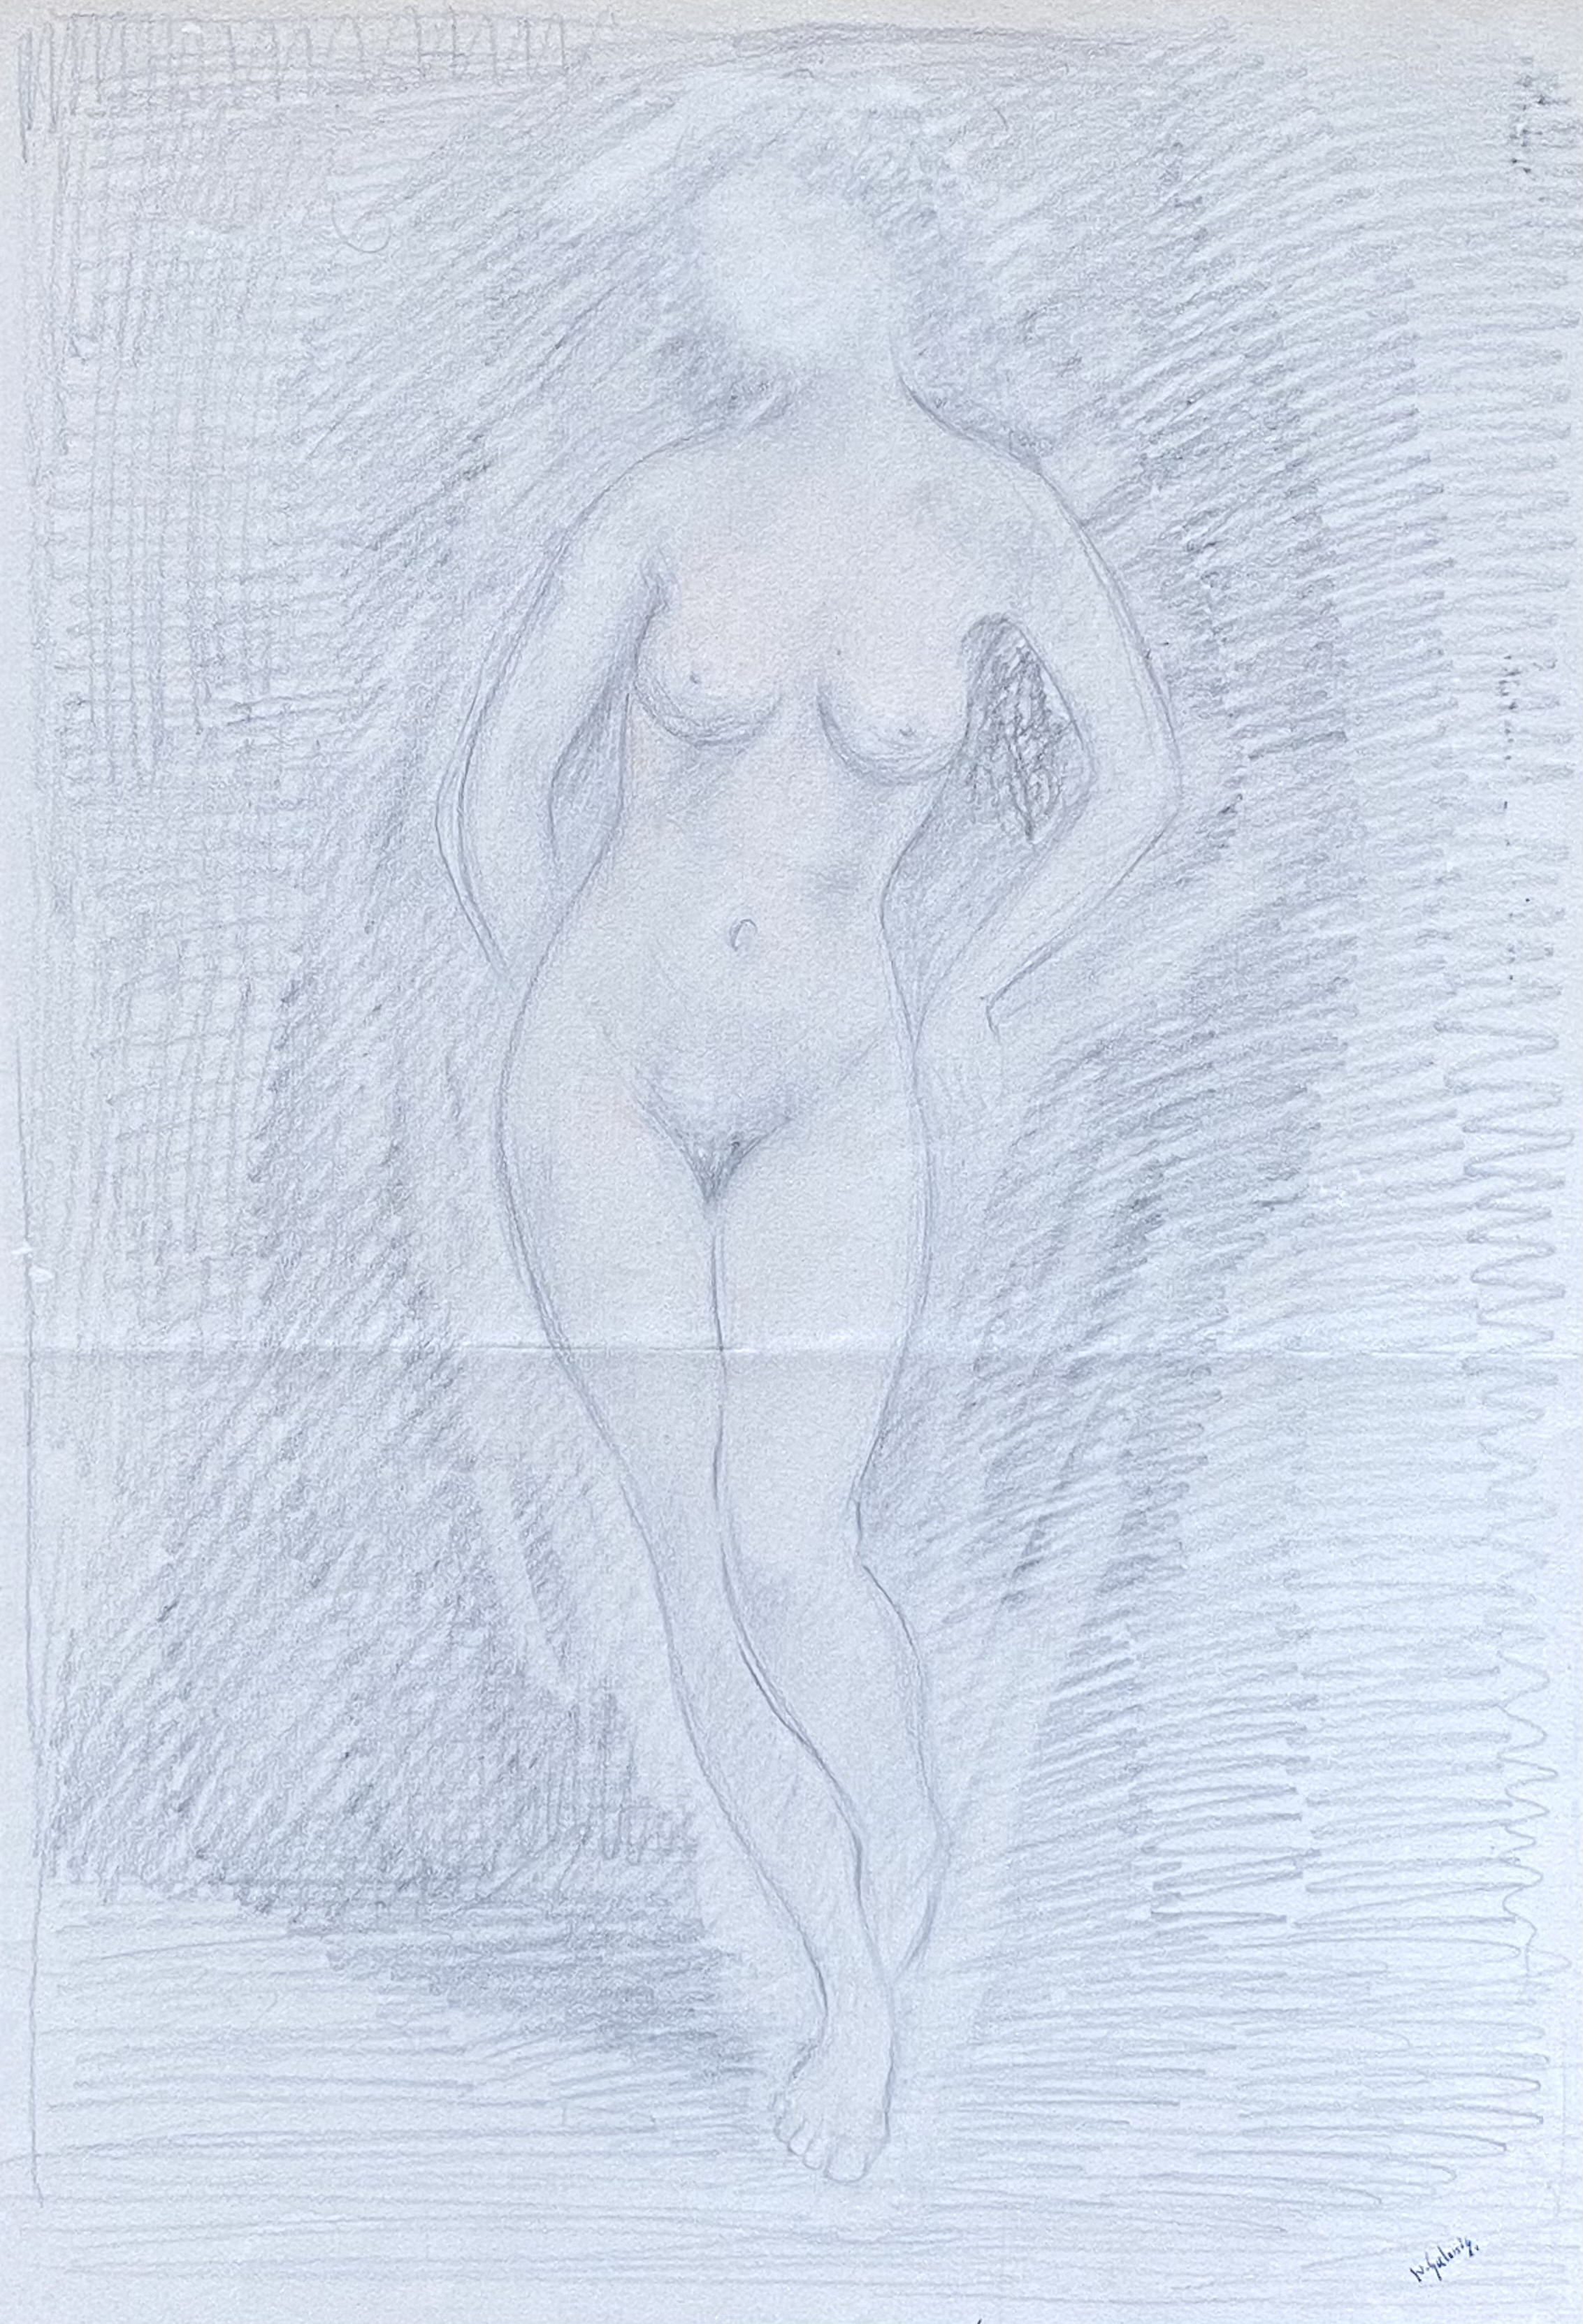 Dimitrios Galanis (Greek, 1880-1966) (AR), Nude, charchoal on paper, 53 x 37 cm.